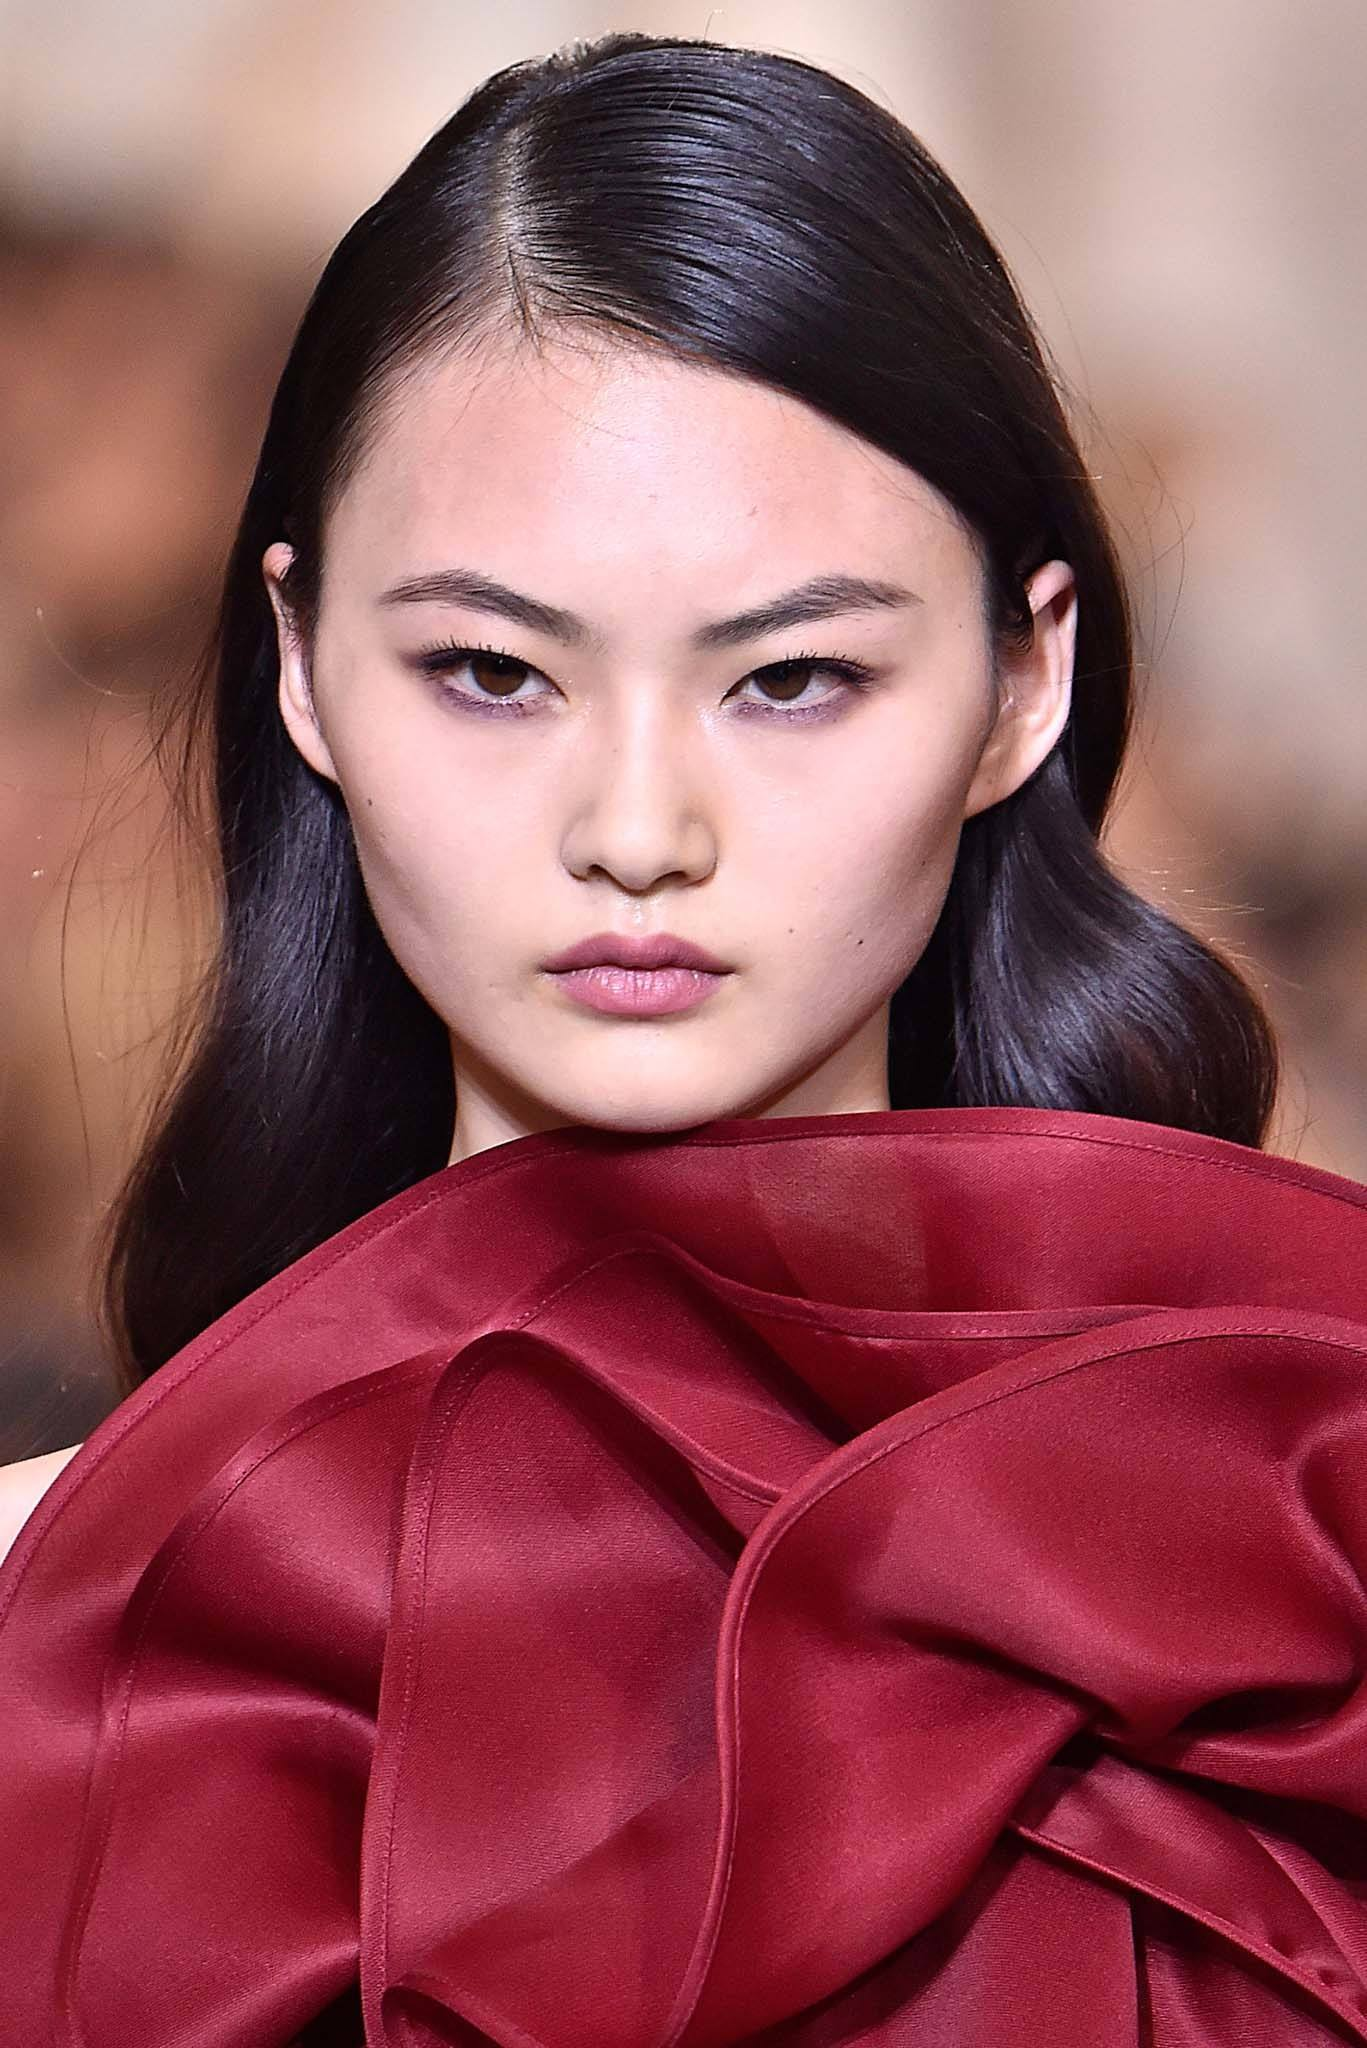 Retro hairstyles: Close up shot of a model with dark brown long hair styled into Hollywood waves, wearing red and walking on the Elie Saab runway